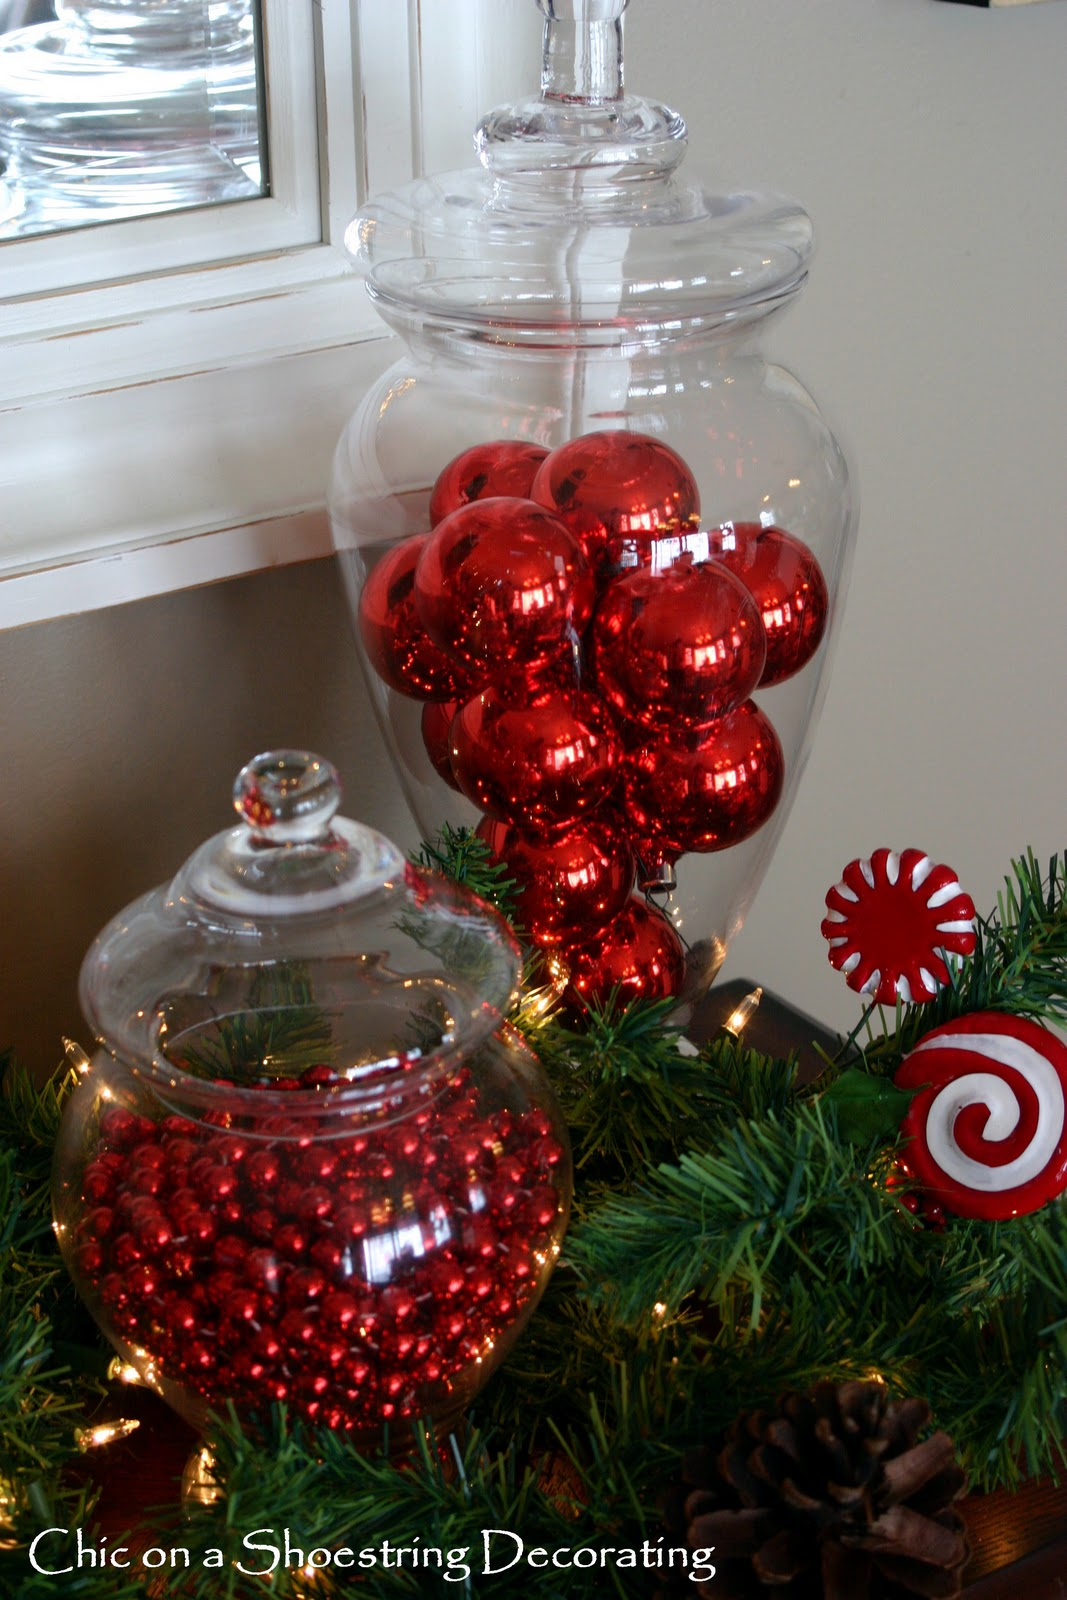 Simple Christmas Decorating Ideas: Chic On A Shoestring Decorating: My Not-so-simple